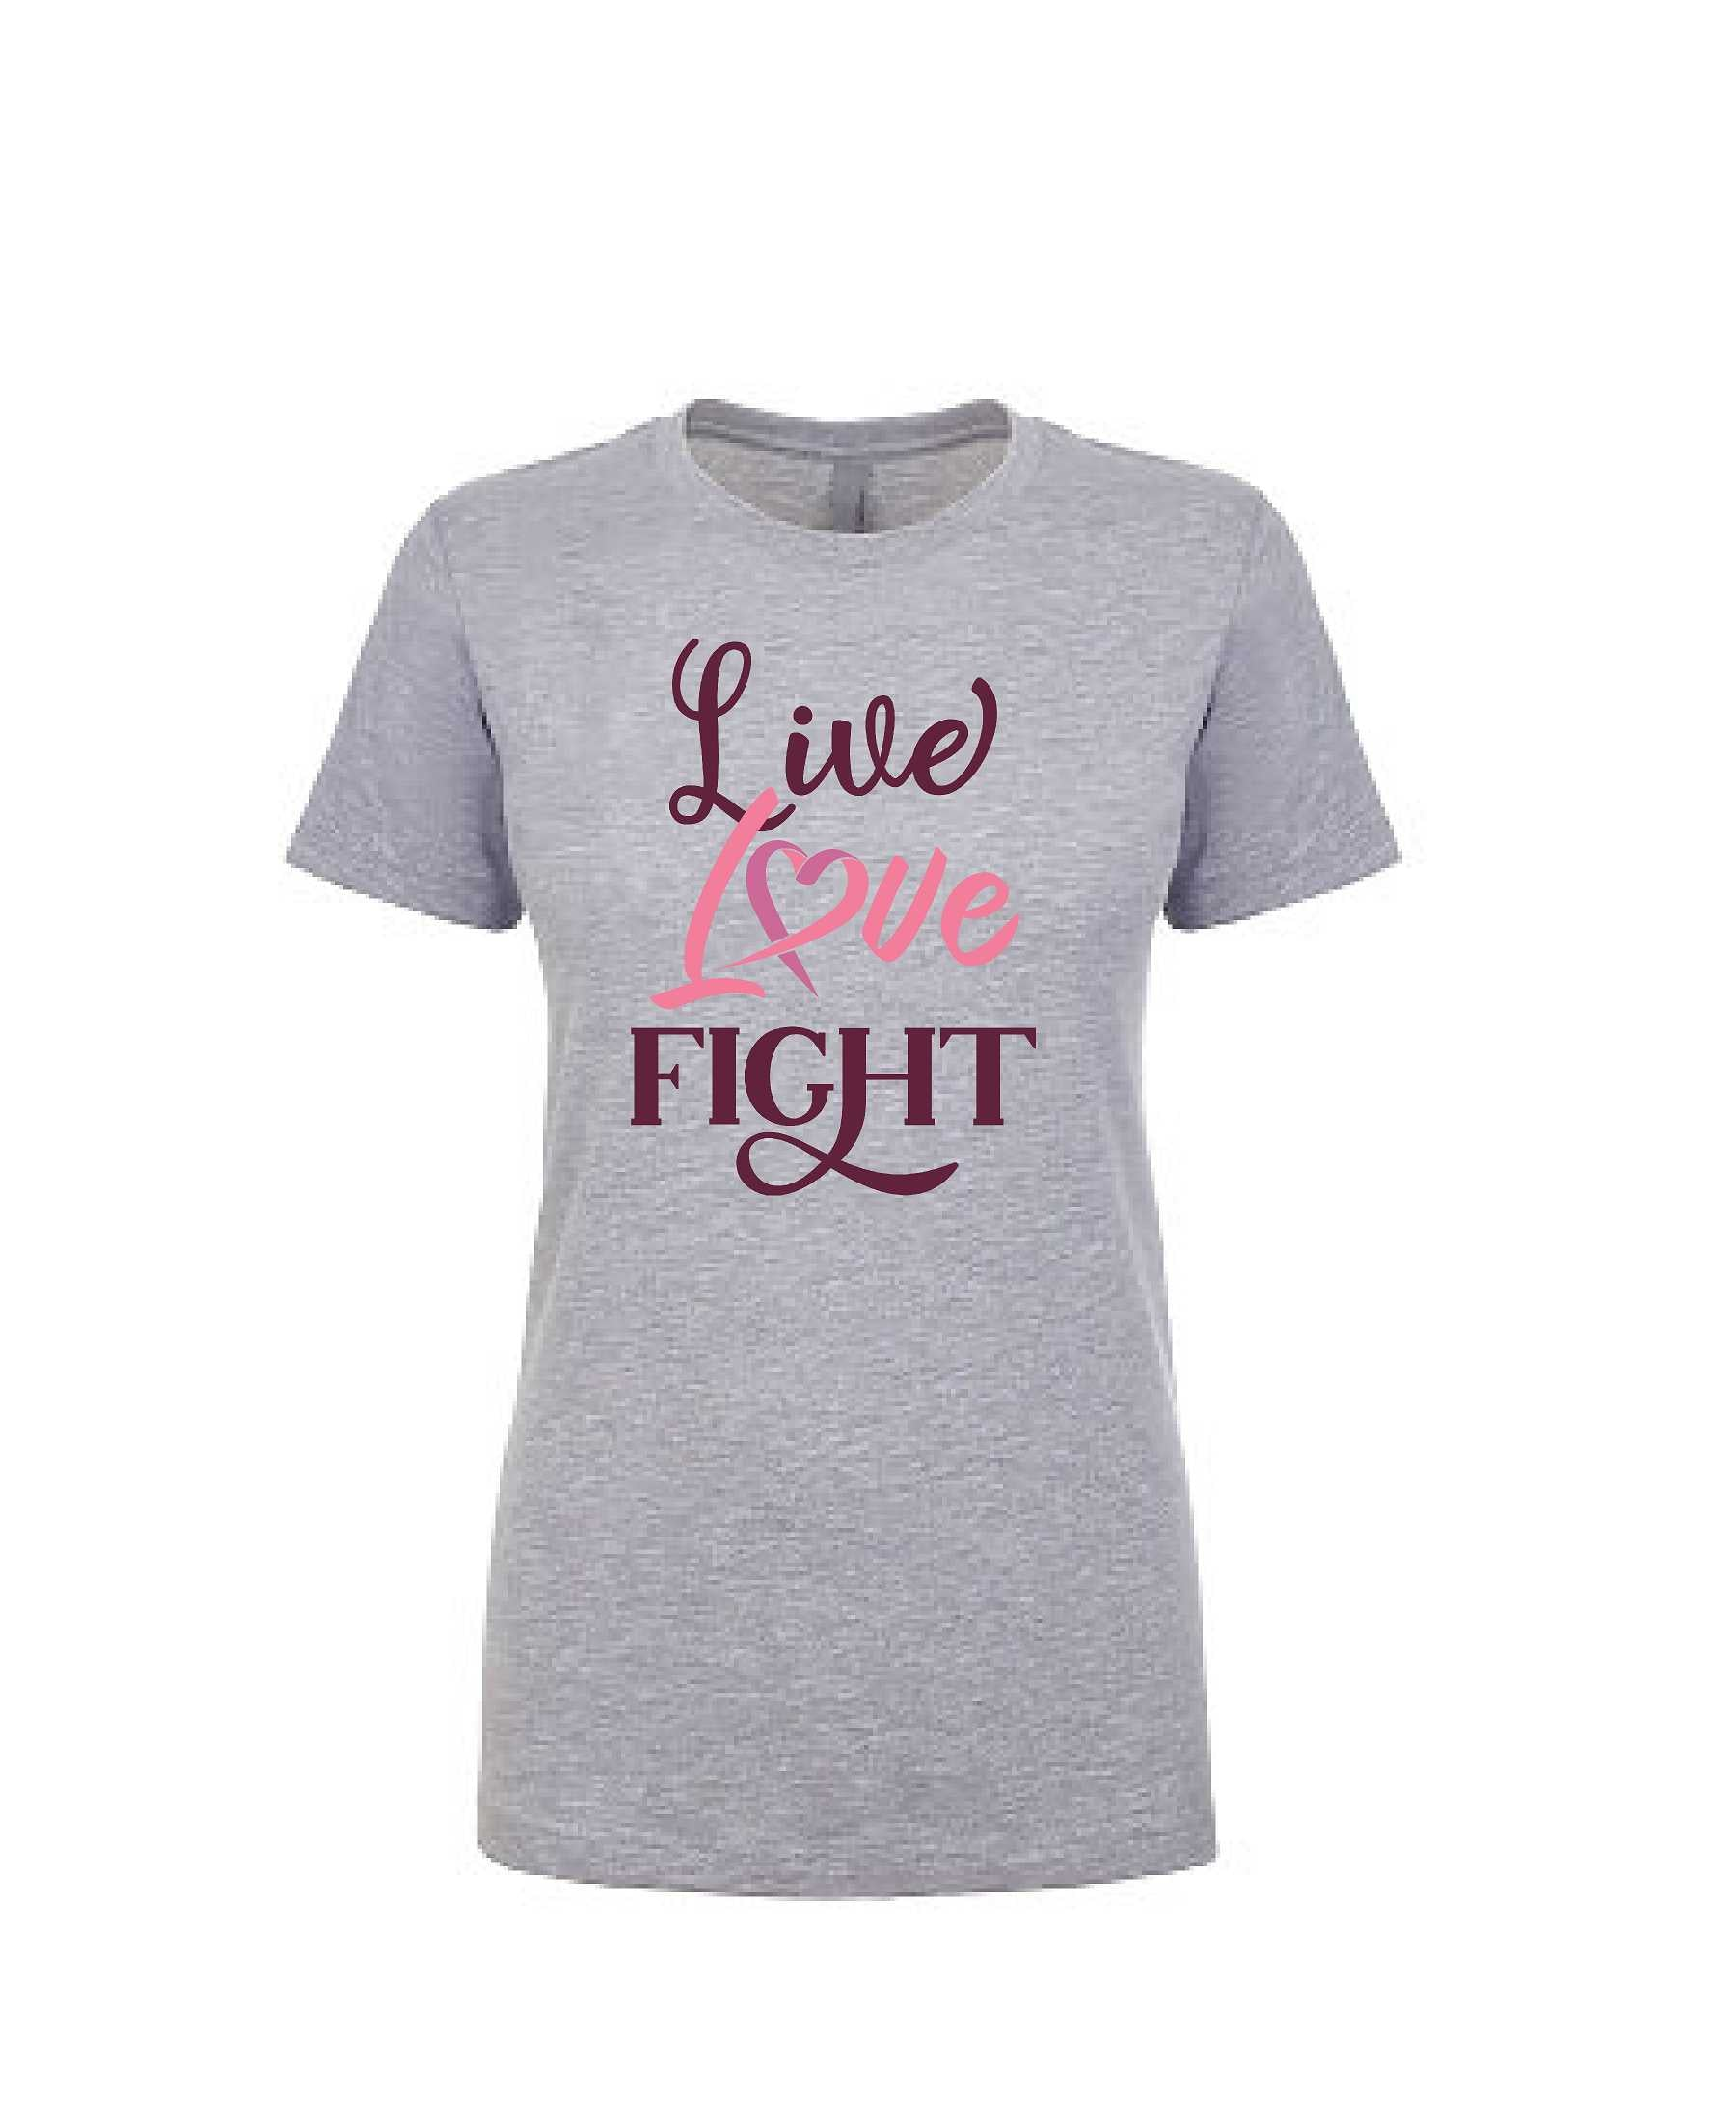 Live Love Fight - Women's Boyfriend Tee